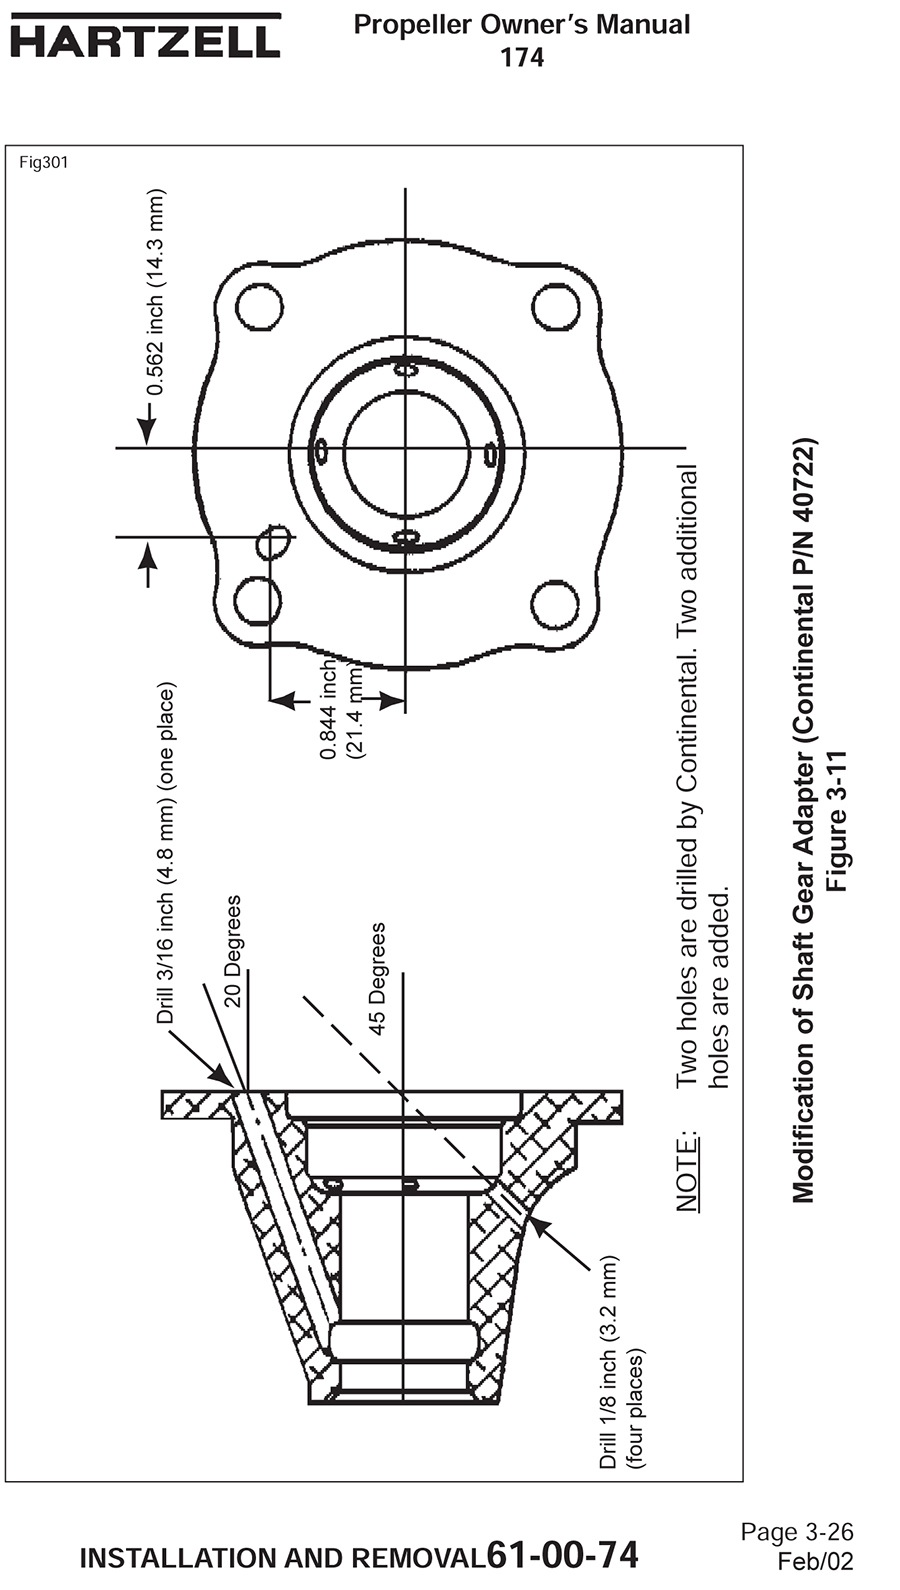 Hartzell Prop Manual 2010 page78